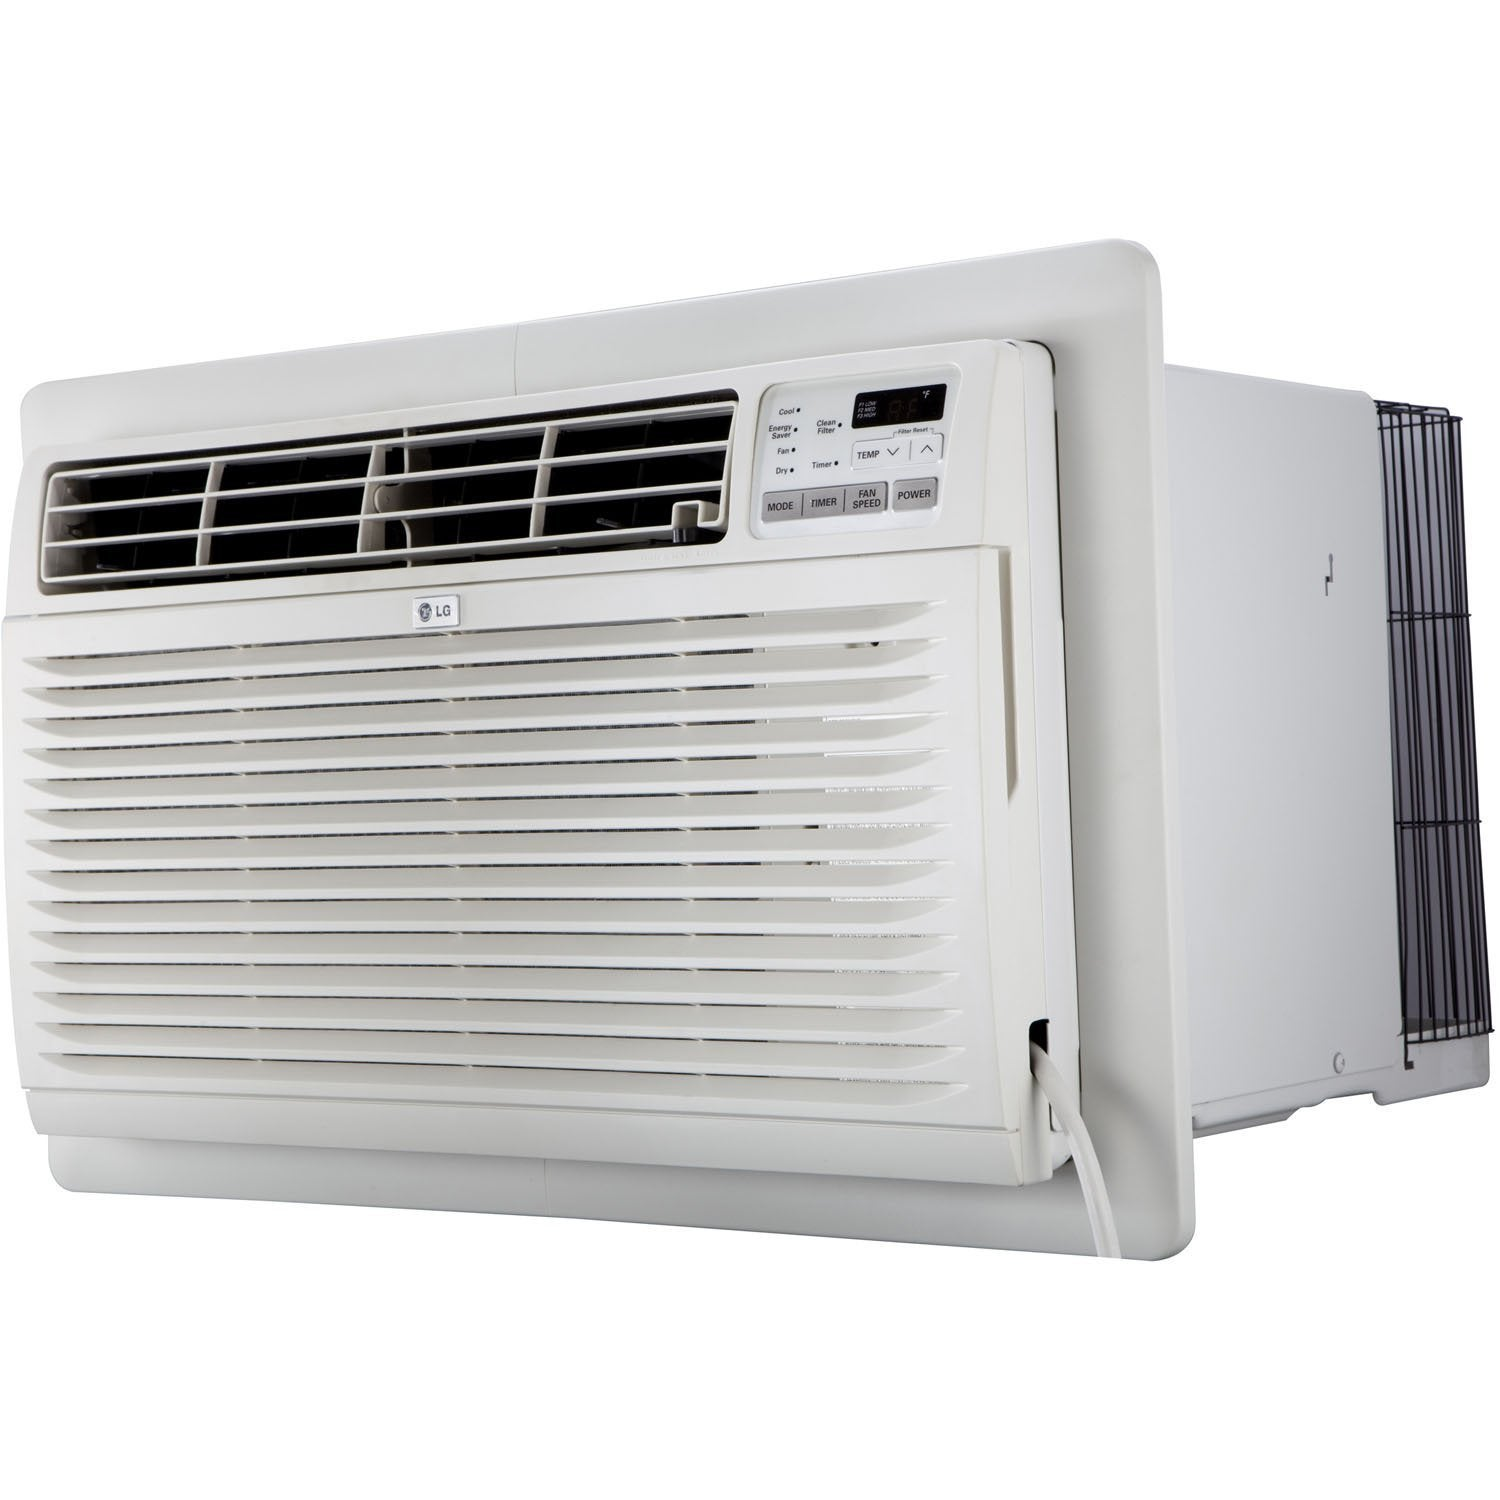 LG LT1216CER Through the Wall Air Conditioner, White